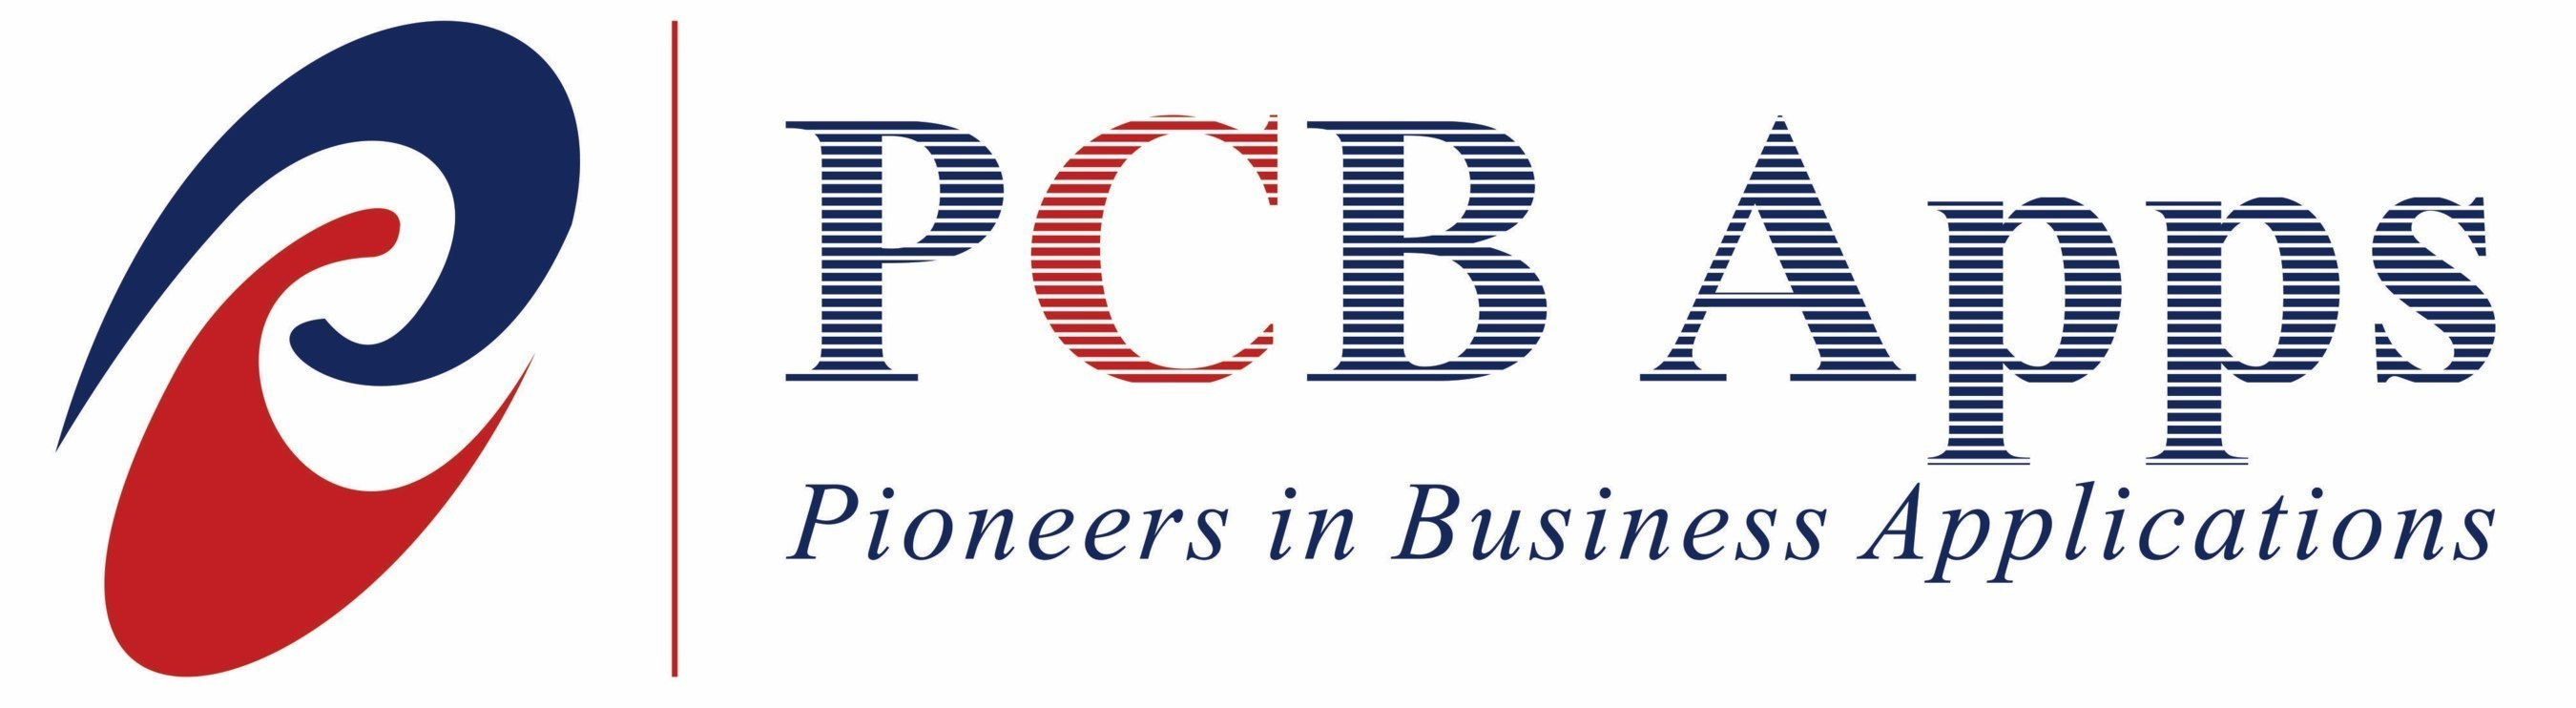 PCB Apps Lands Spot on Prestigious Inc. 500 List for Third Time!